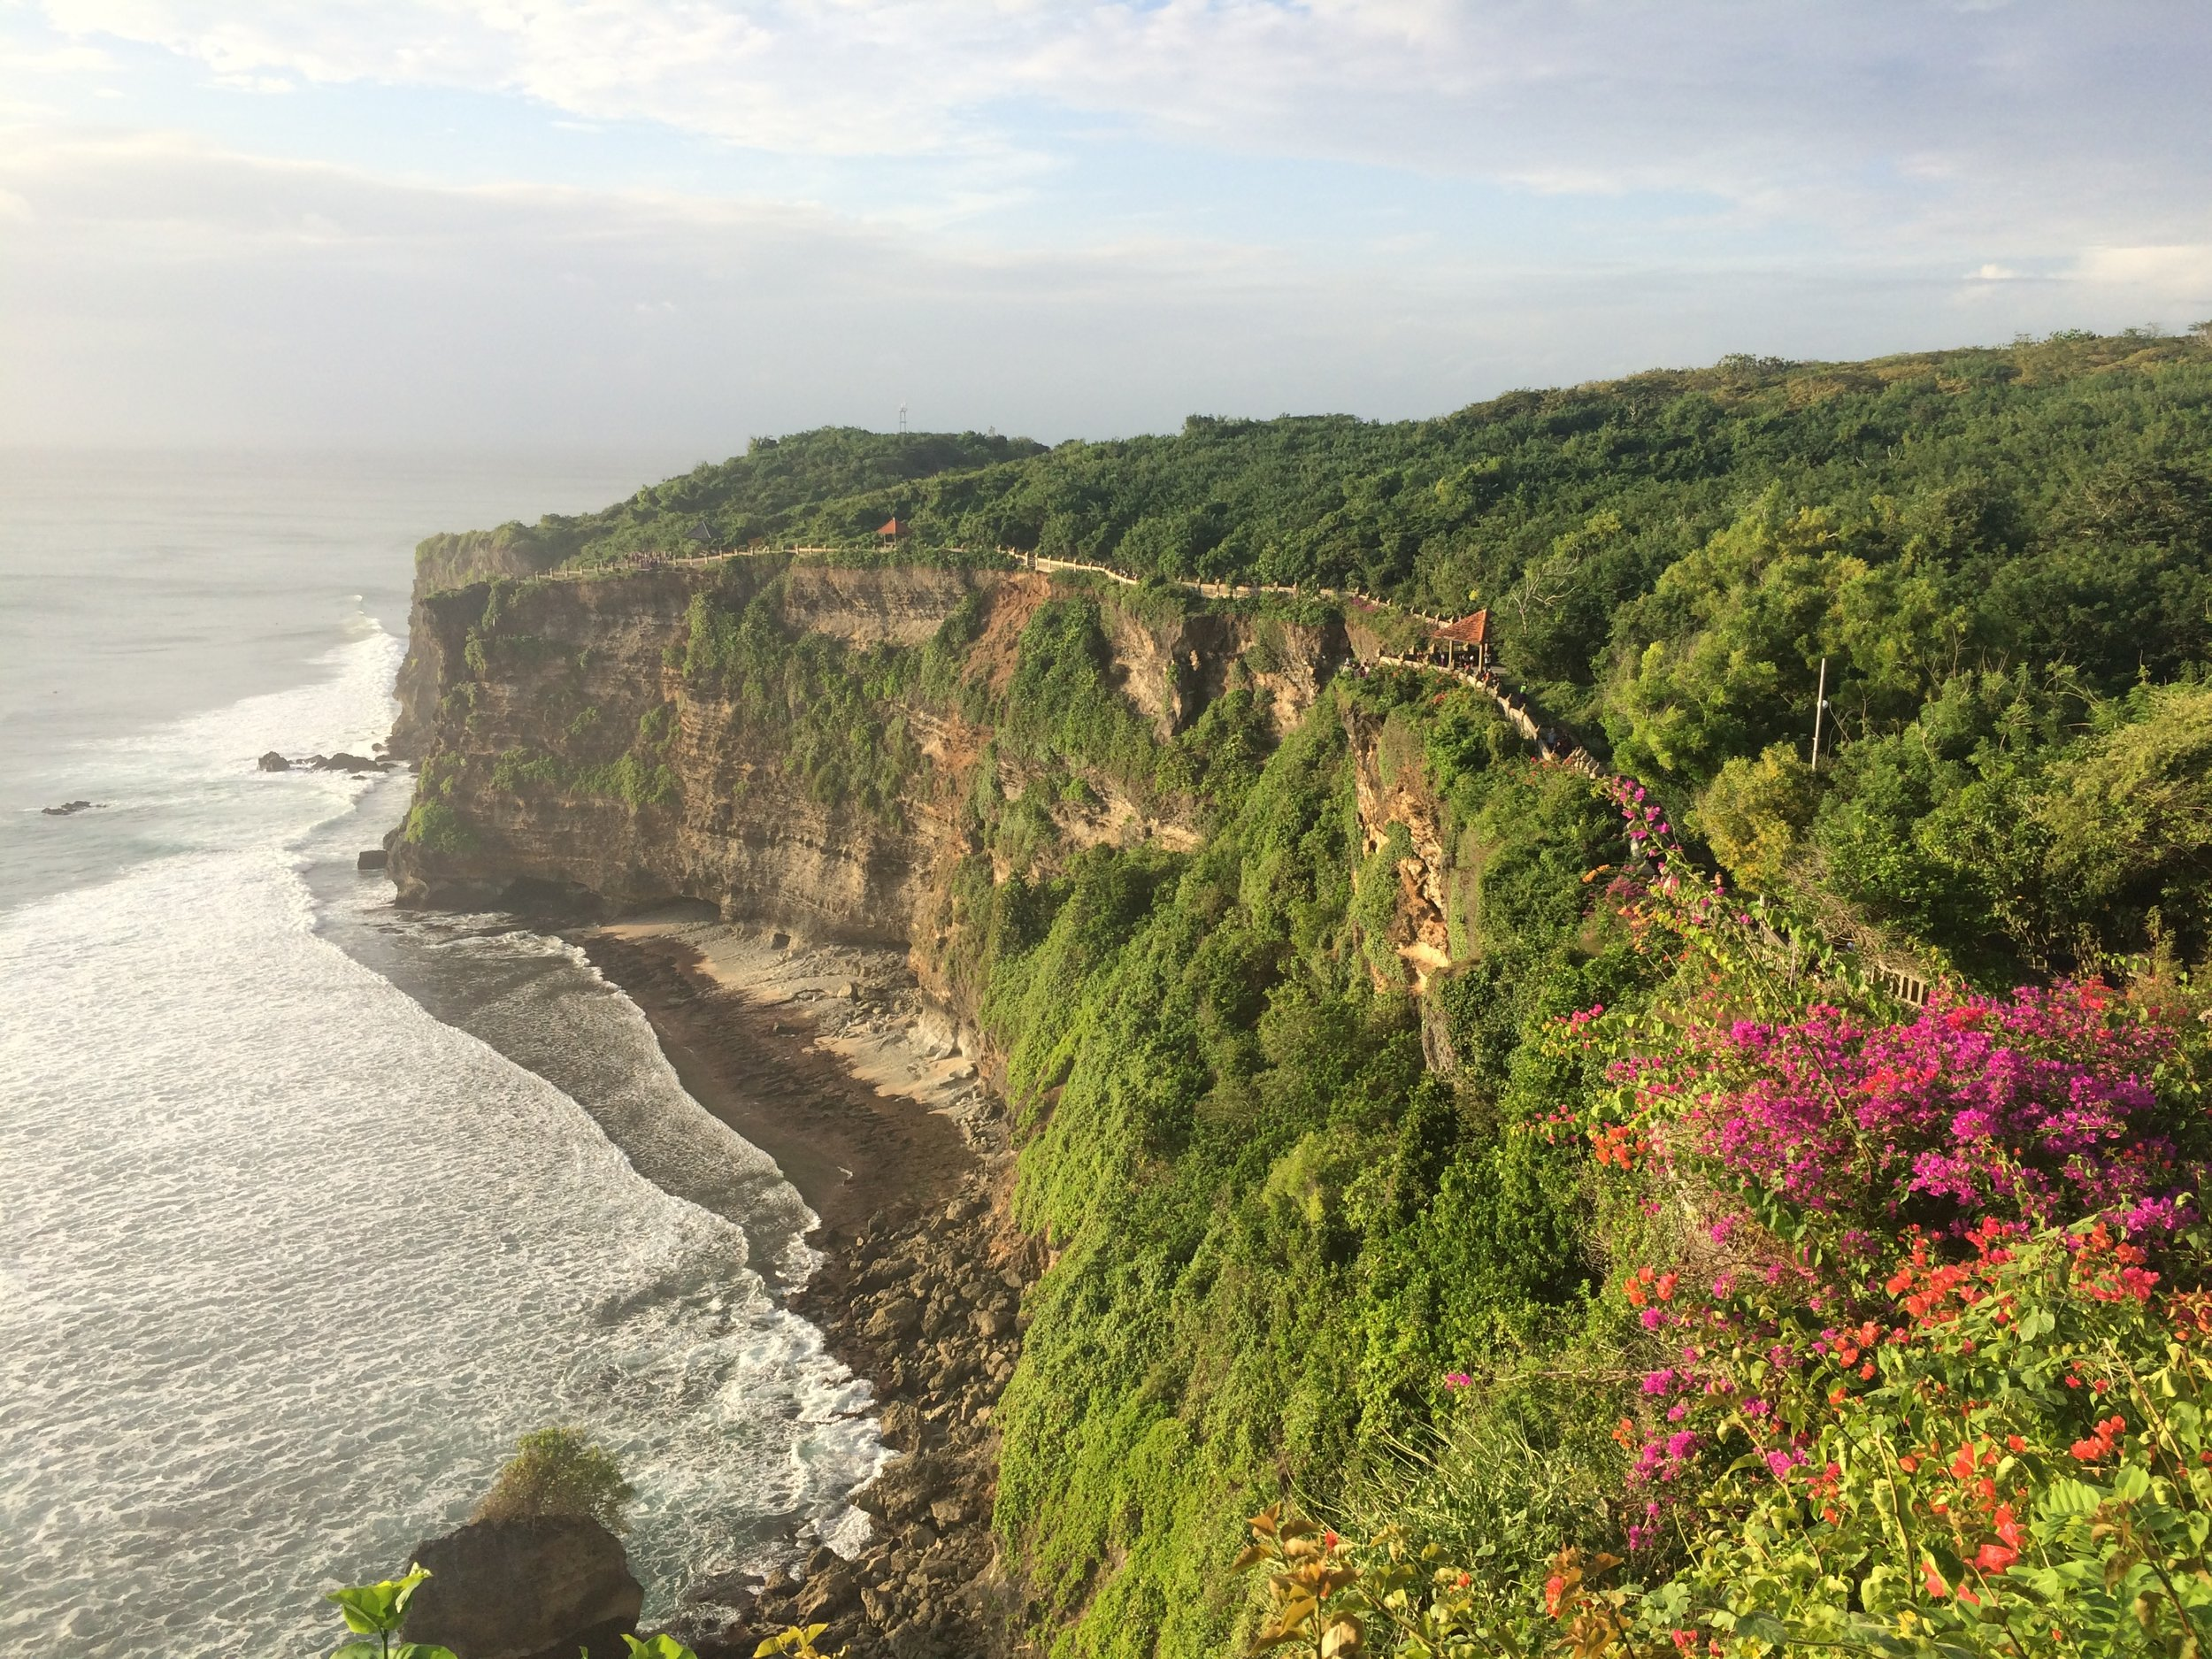 The view from the Uluwatu Temple.